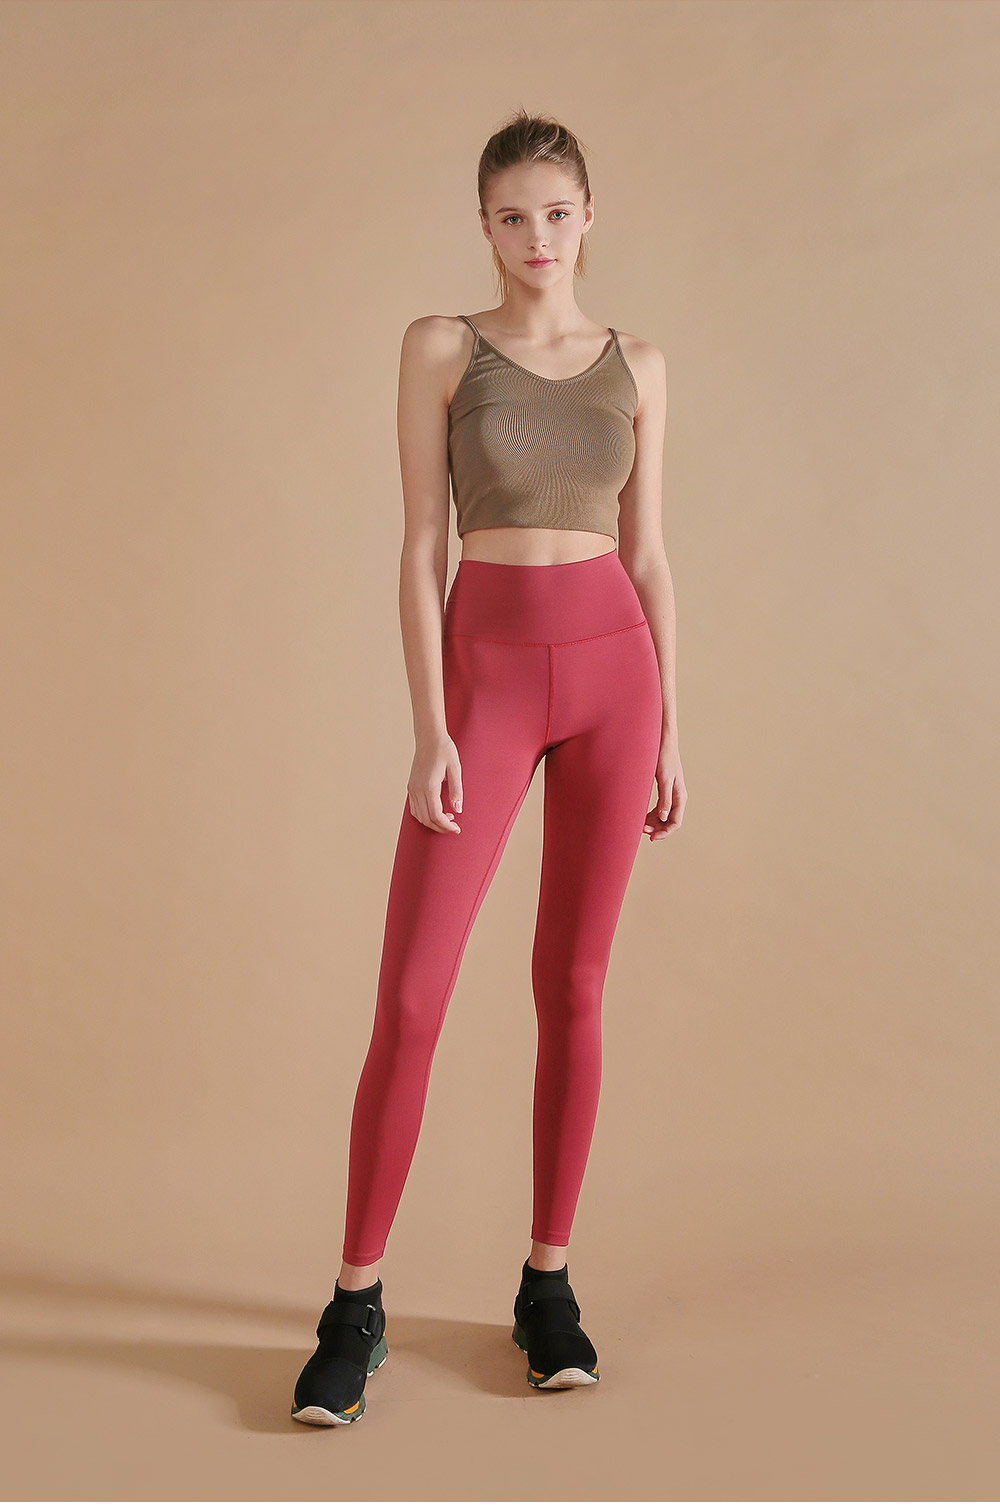 //cdn.nhanh.vn/cdn/store/29770/psCT/20190108/11027736/_5Kg_Perfect_Line_Leggings_Plus_(2019_22_8).jpg